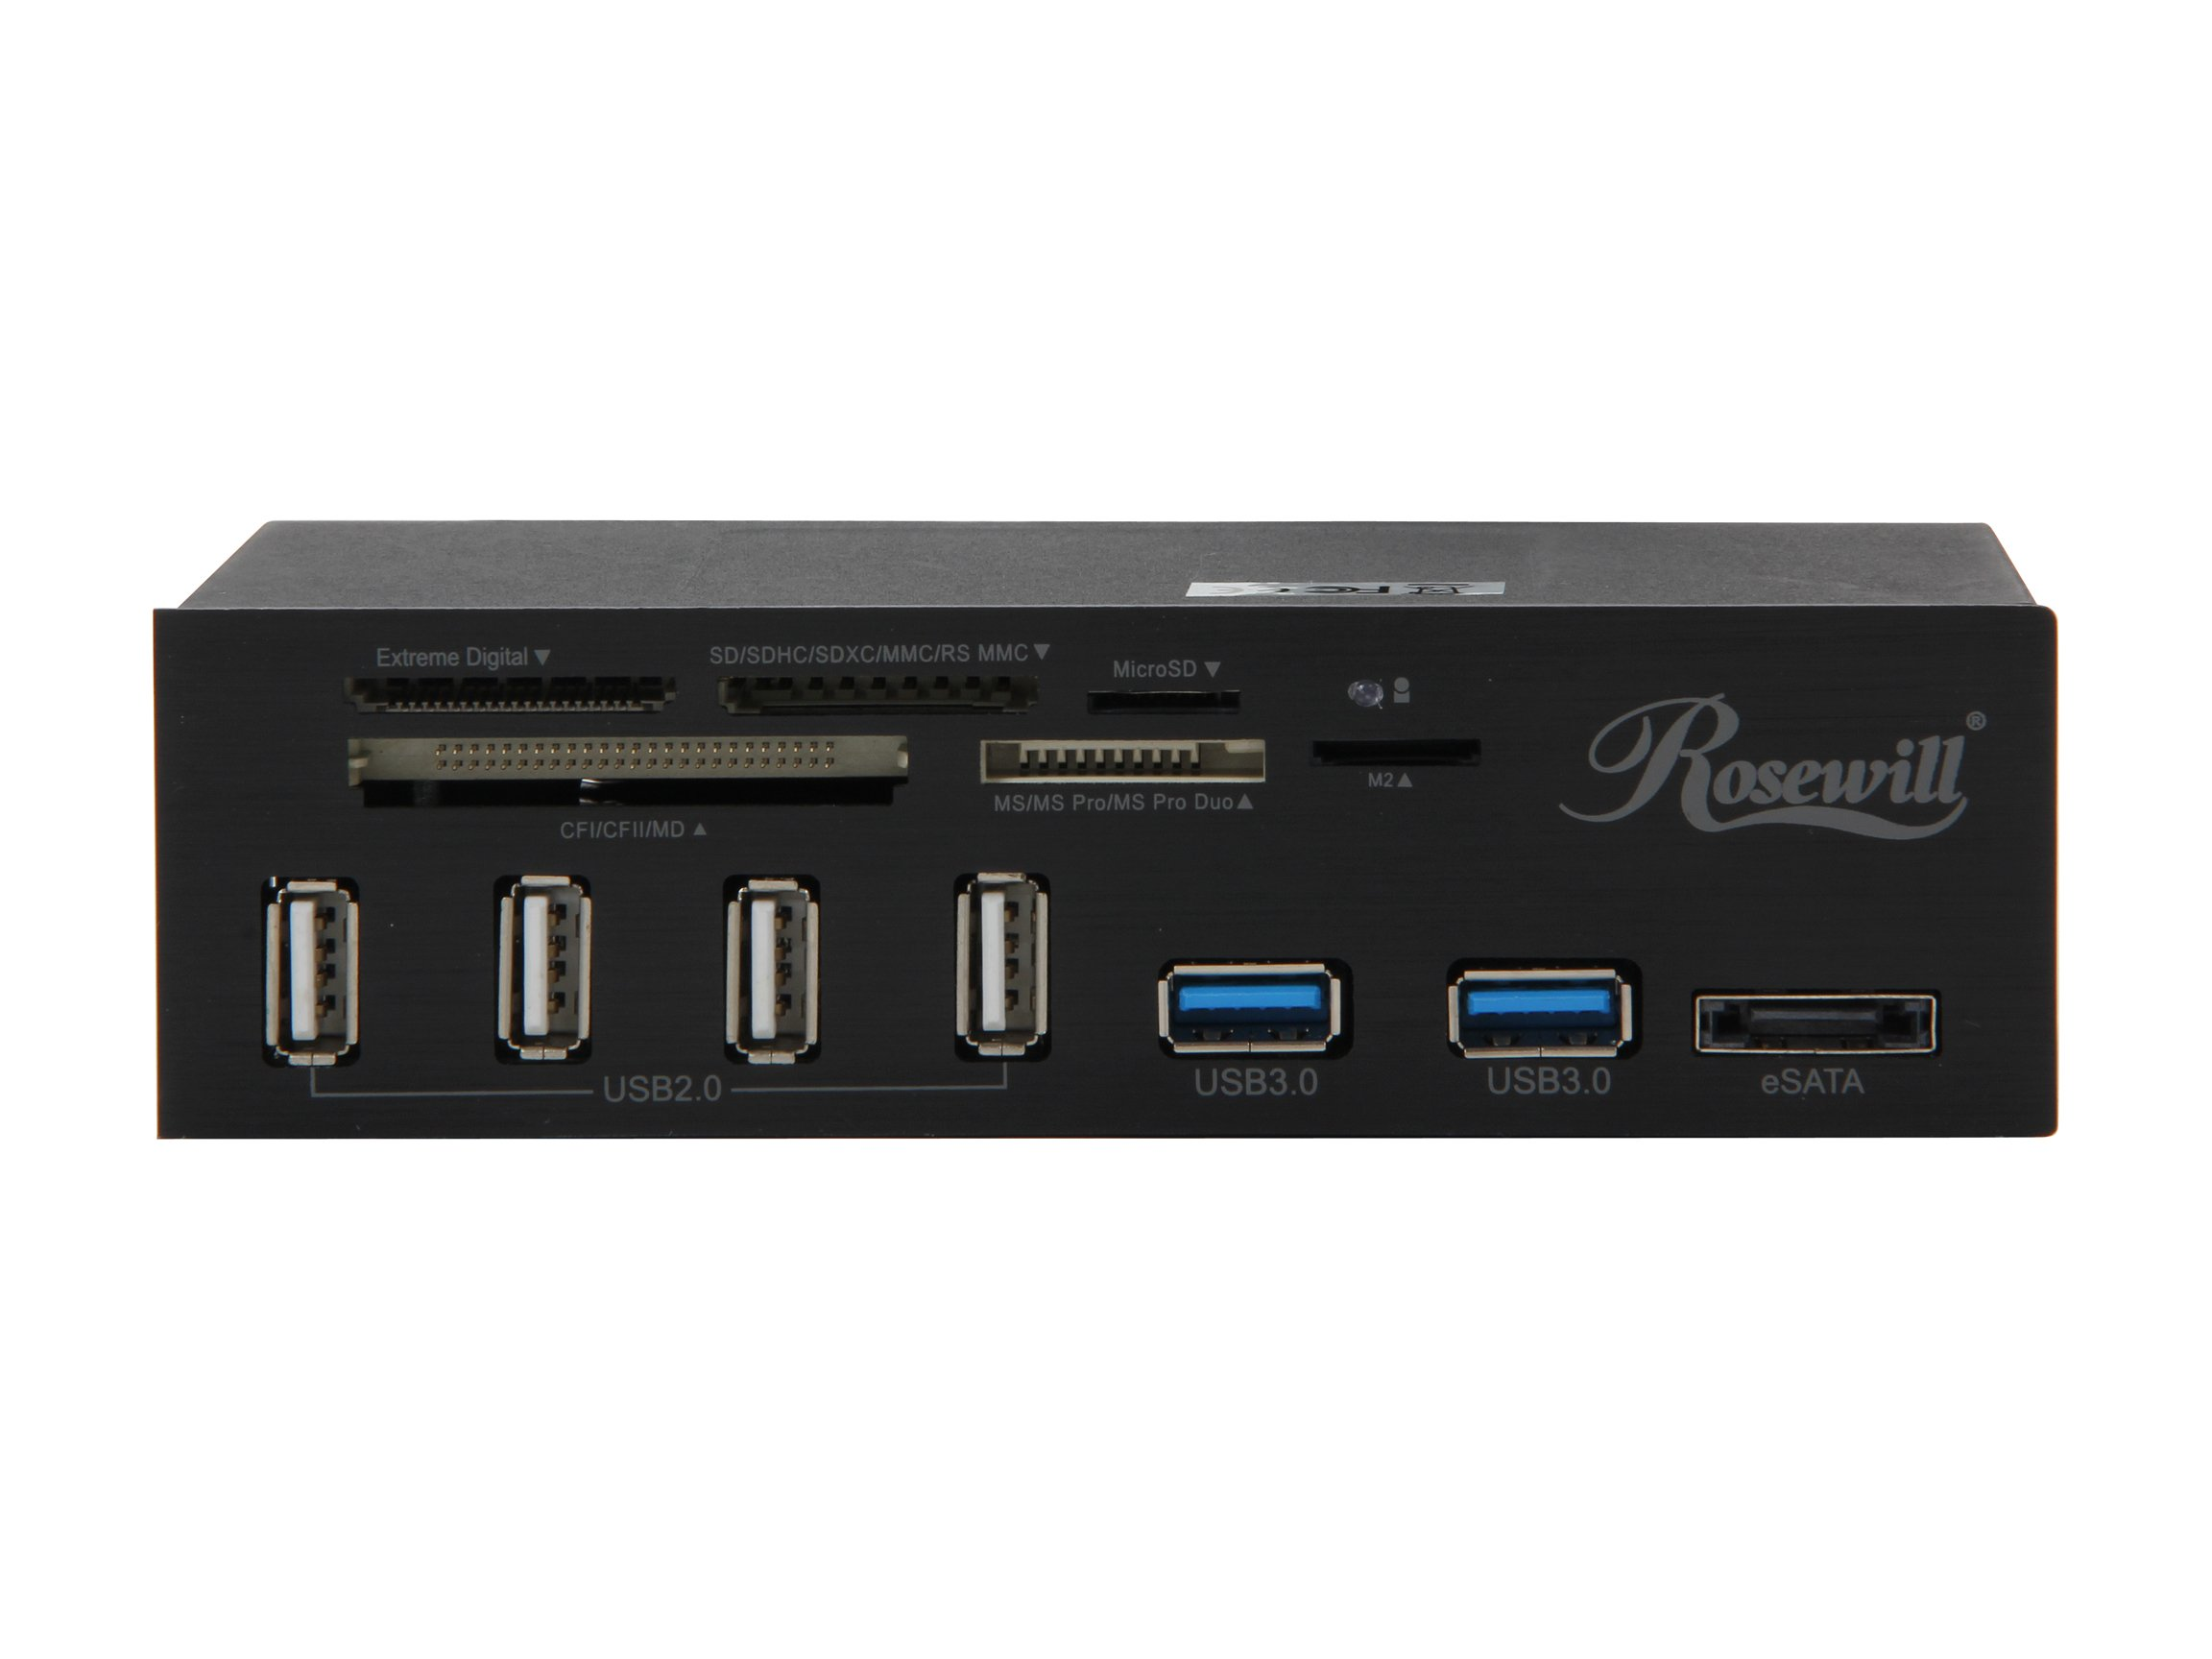 Rosewill 2-Port USB 3.0 4-Port USB 2.0 Hub eSATA Multi-In-1 Internal Card Reader with USB 3.0 Connector (RDCR-11004) by Rosewill (Image #2)